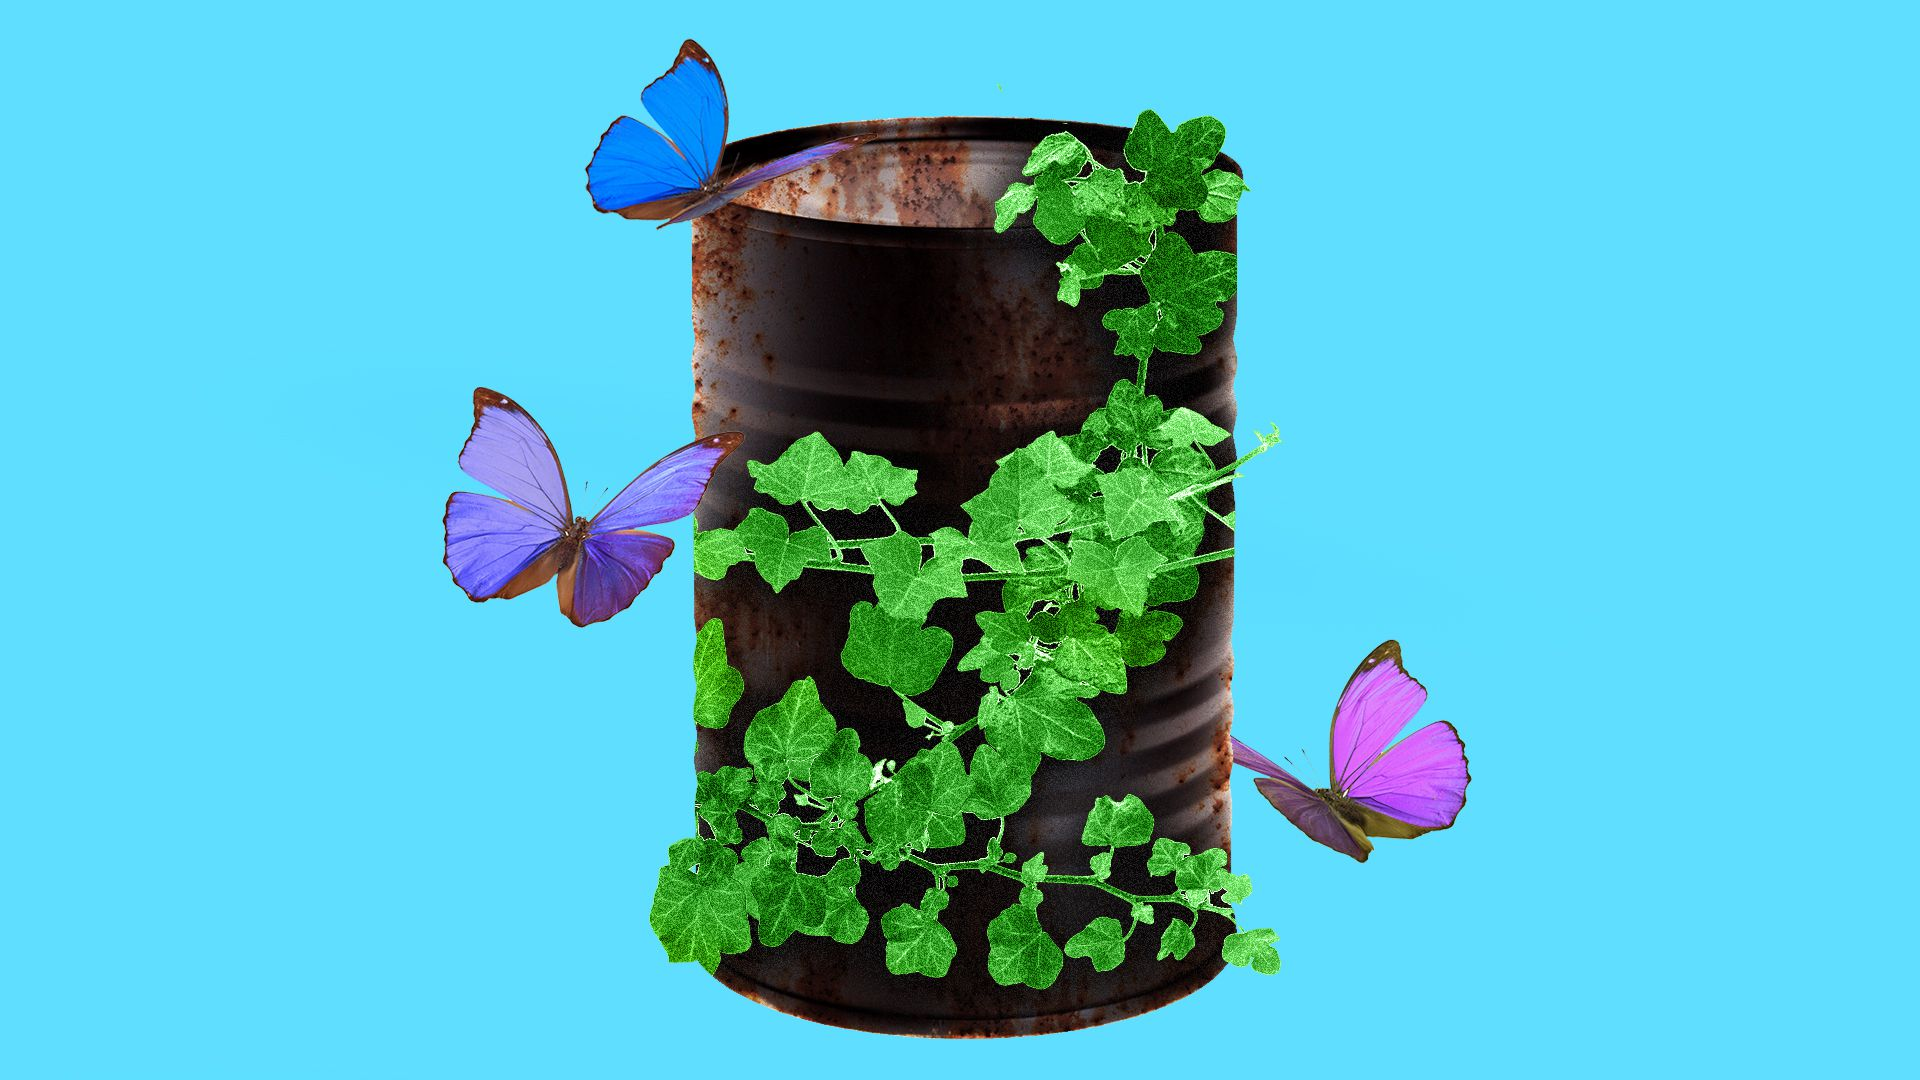 Oil barrel with plants and butterflies